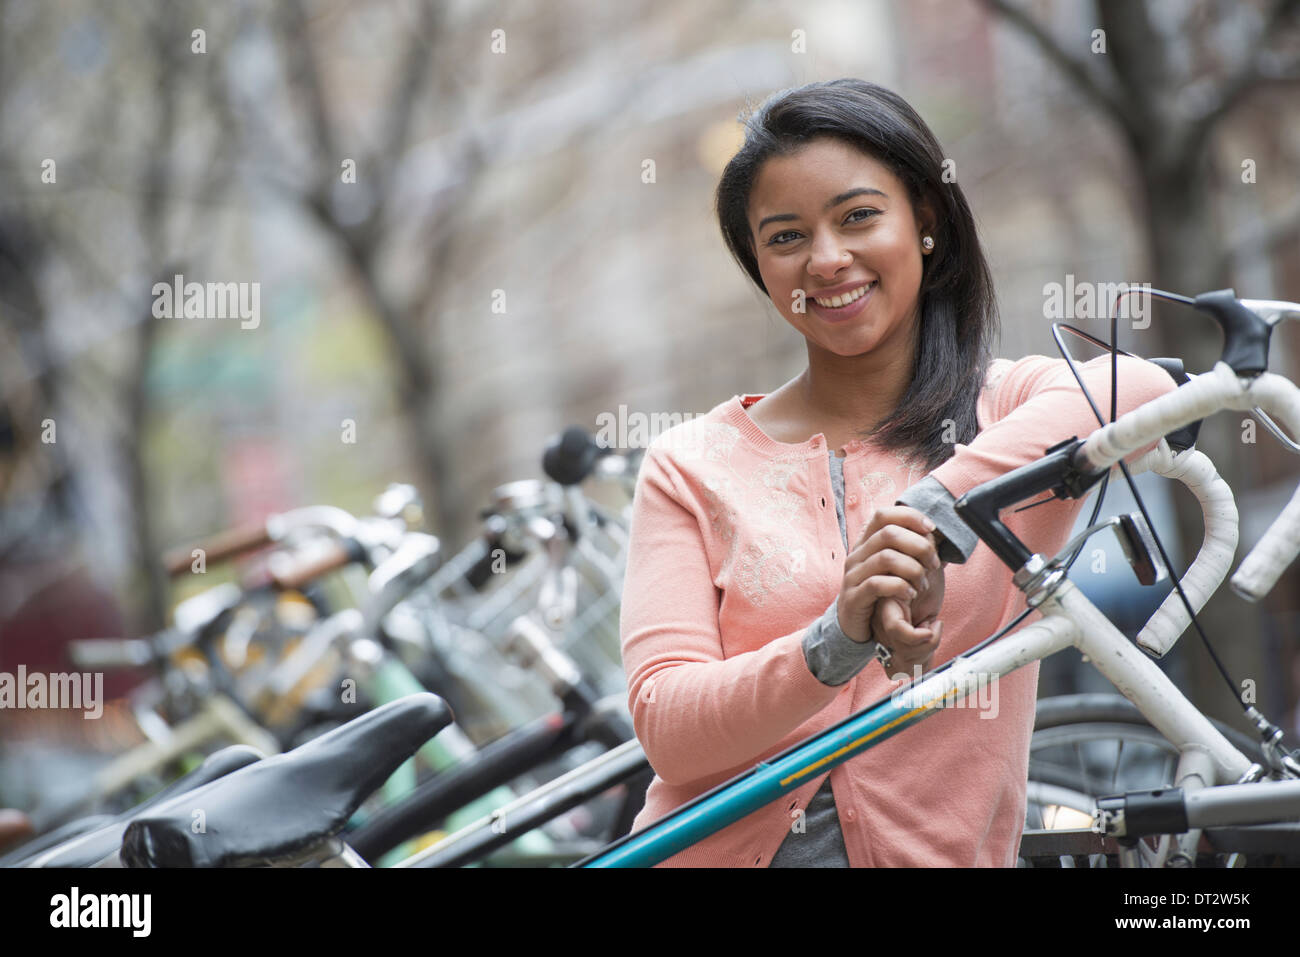 View over cityA young woman with black hair wearing a peach shirt standing beside a rack of parked locked bicycles - Stock Image